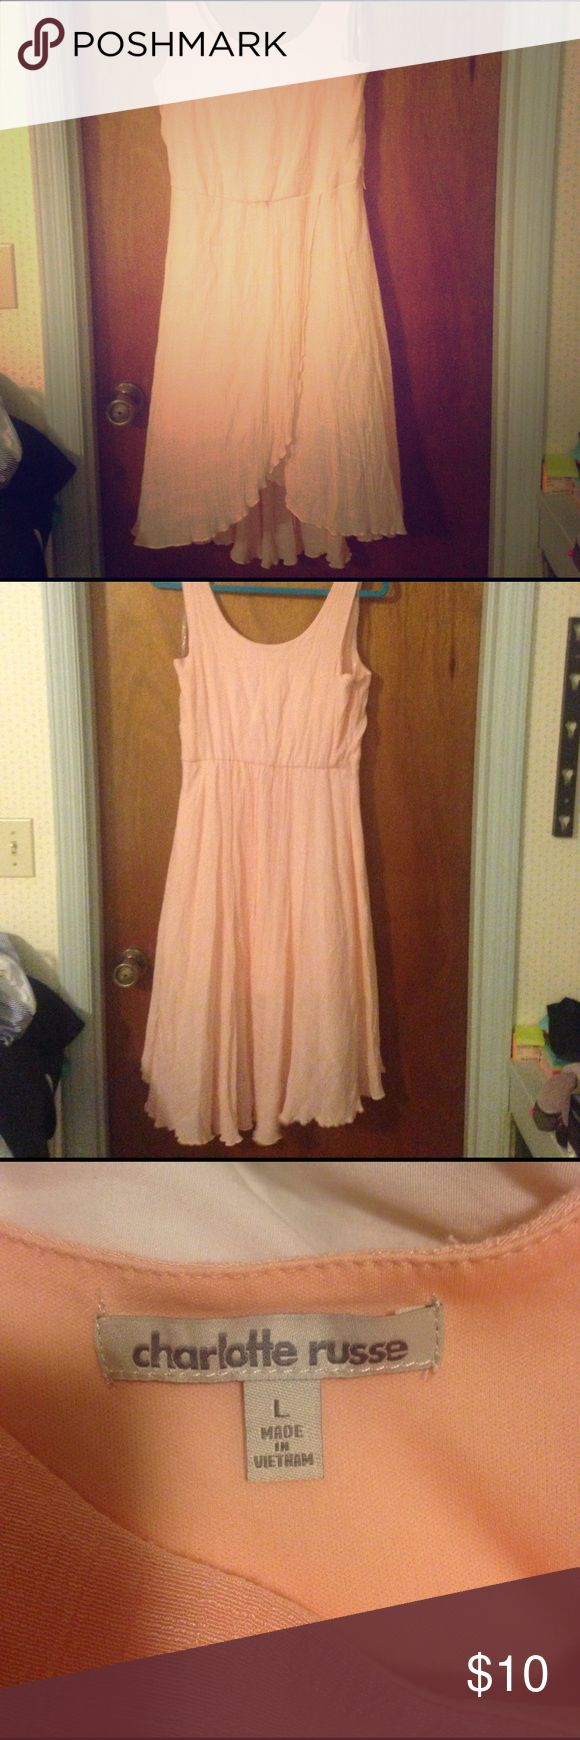 "Charlotte Russe Dress High low Charlotte Russe dress. Good condition. 34"" in the front and  42"" in the back Charlotte Russe Dresses High Low"